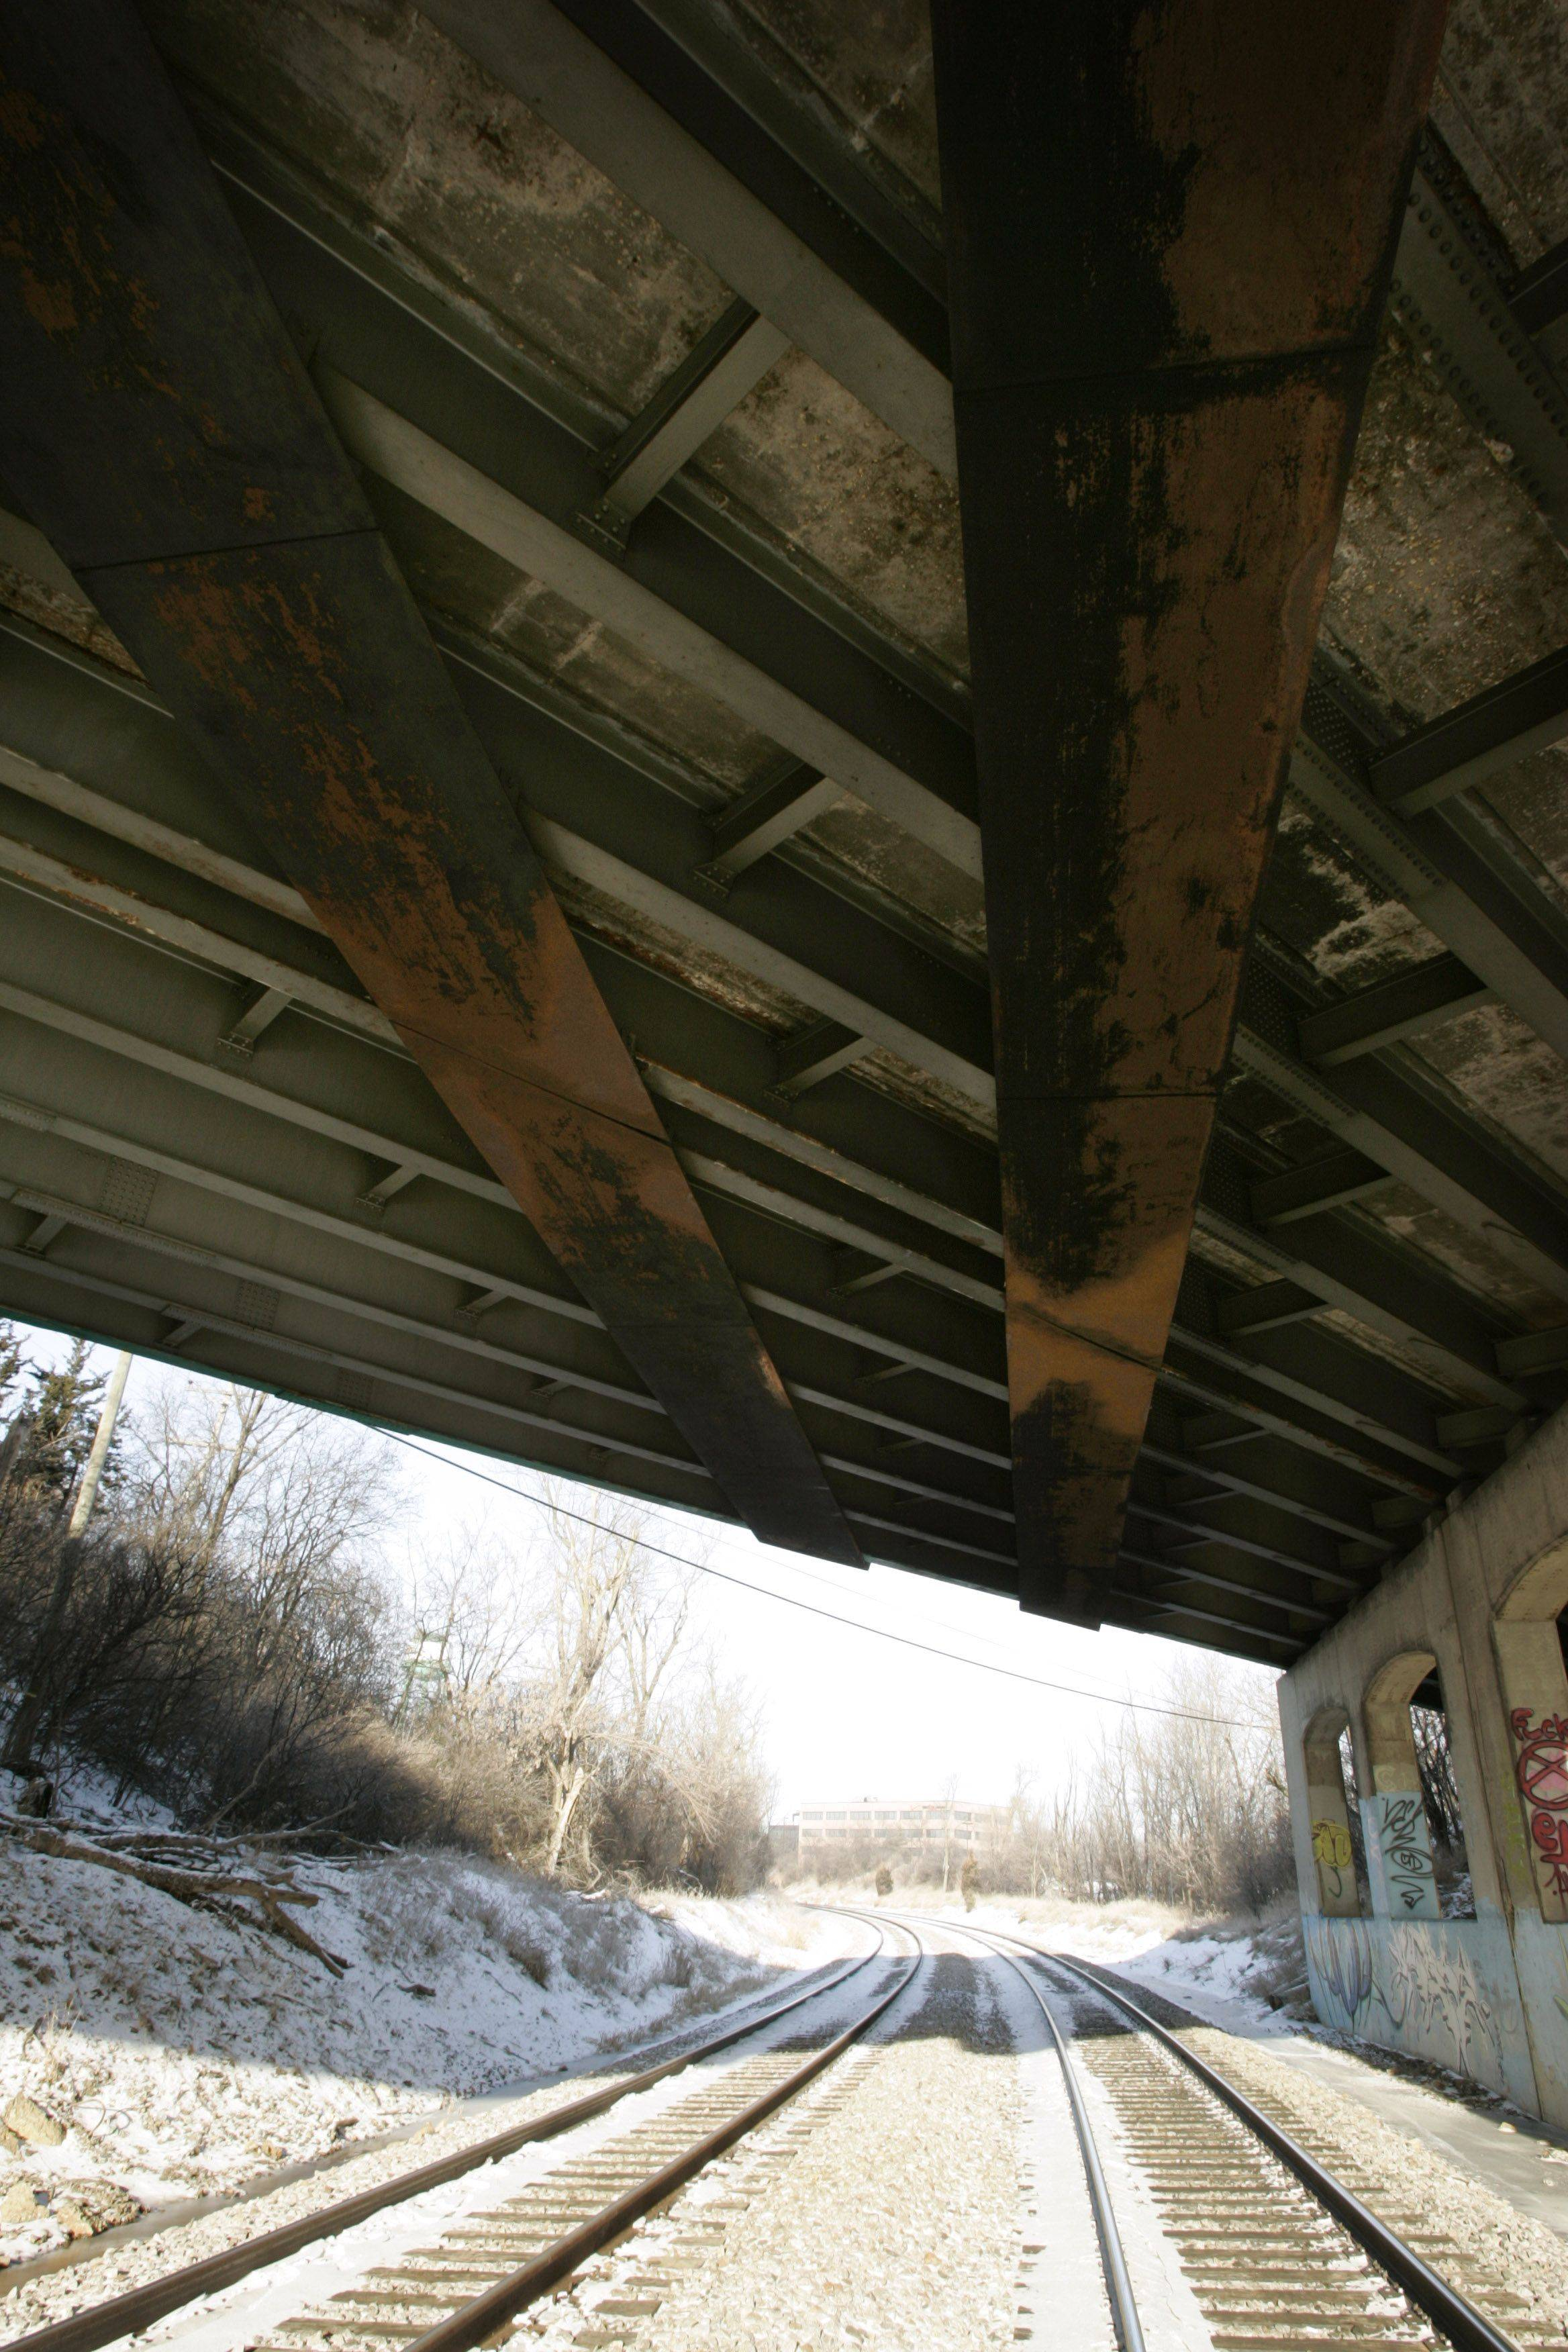 The Route 31 bridge over railroad tracks in Elgin is one of 293 rated structurally deficient in the six-county Chicago and suburban region. Inspections show it's in poor condition.